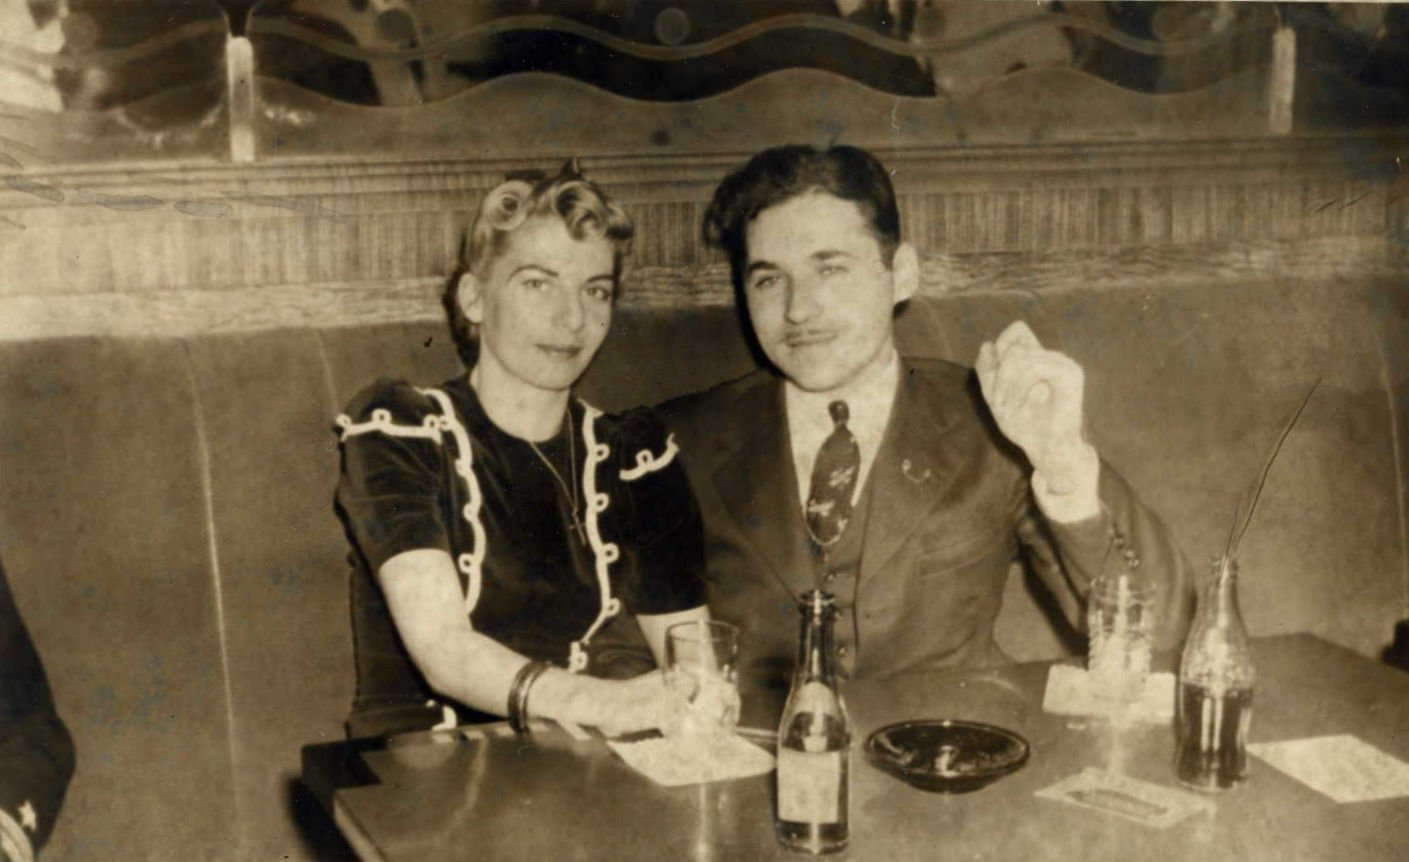 Dorothy Lawlor and Gerald Lawlor